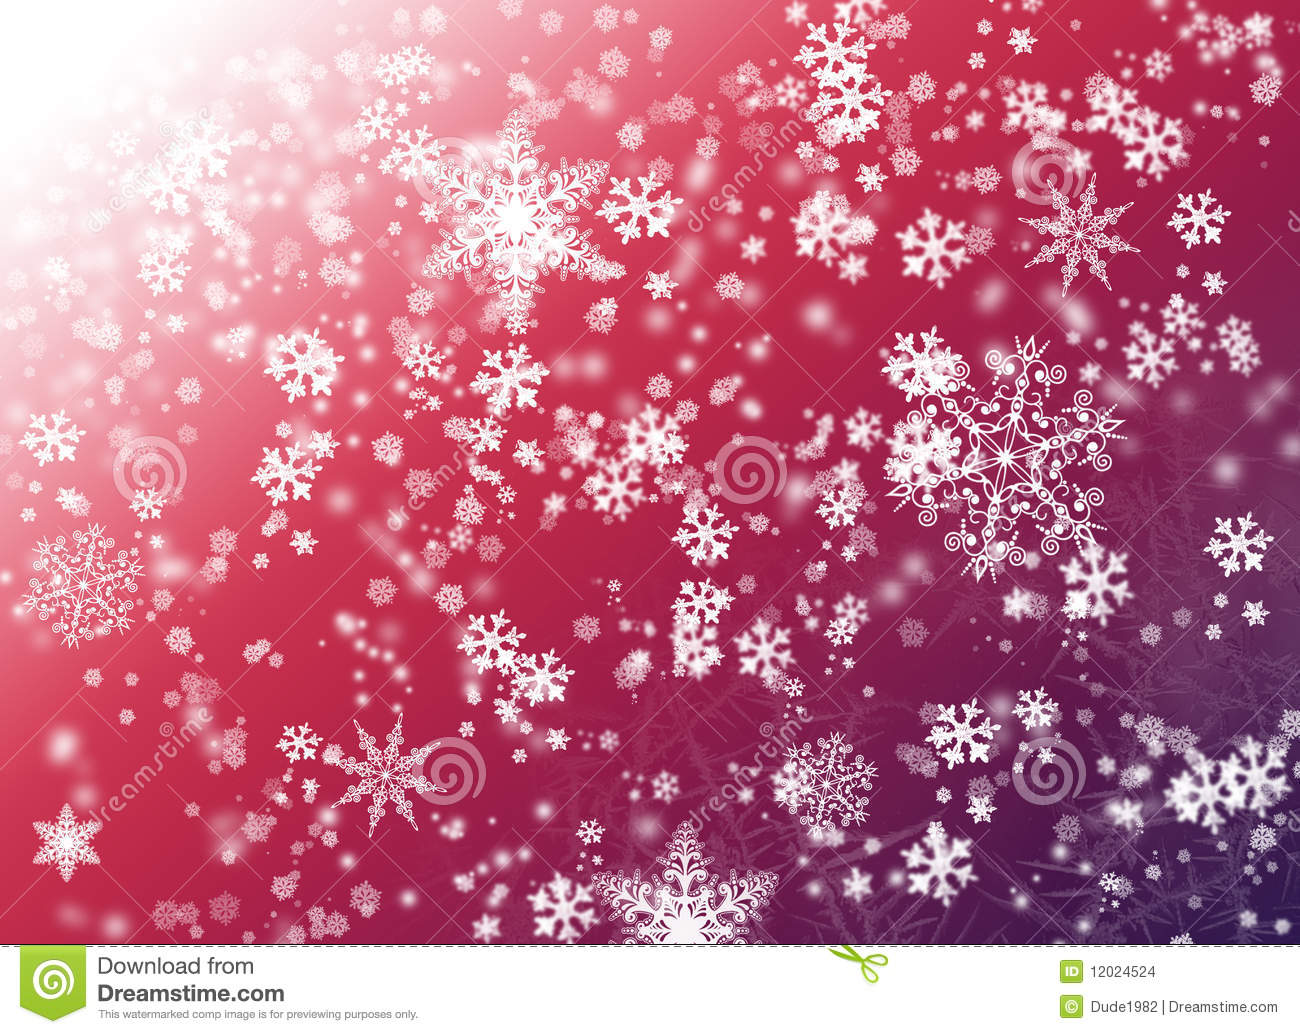 Snow Falling Wallpaper Download Pink Background With Snowflake Stock Illustration Image